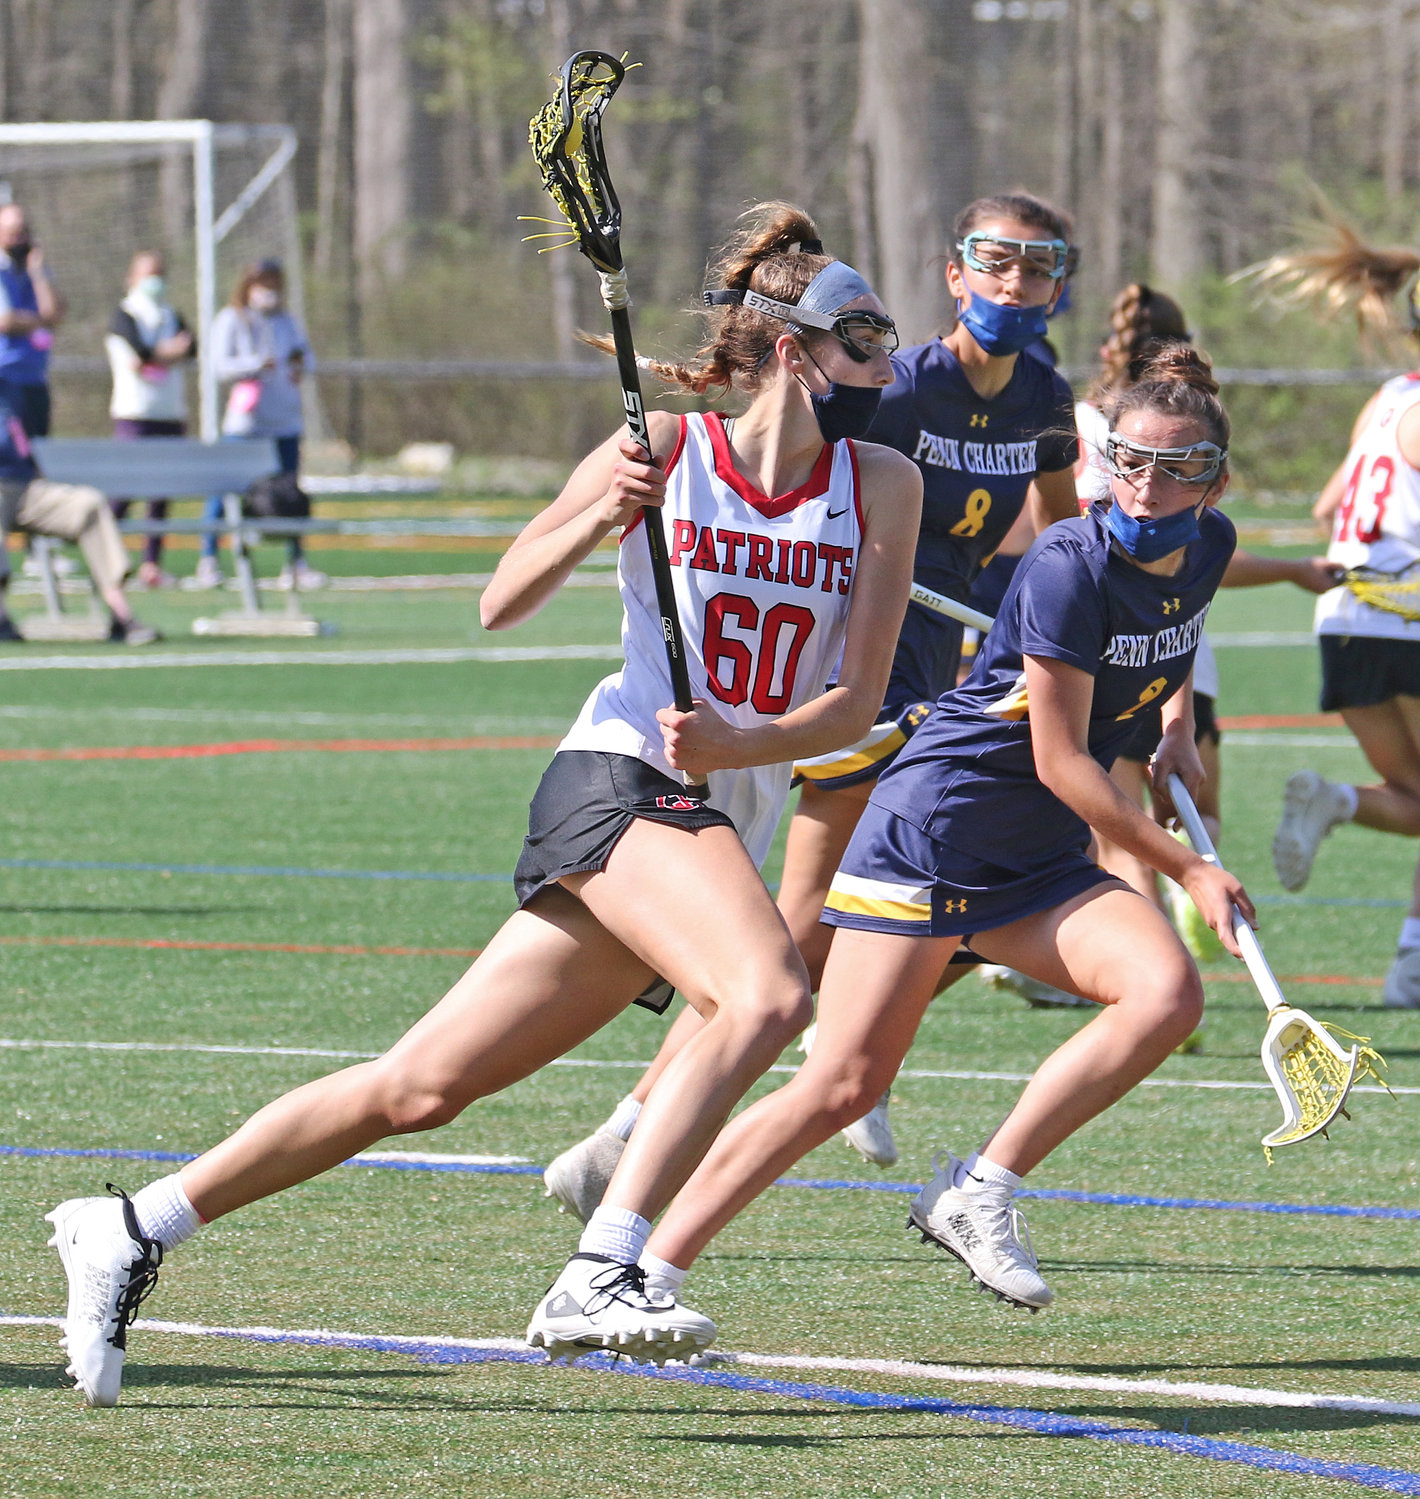 Elise Smigiel, a six-foot GA senior headed to Marquette University, opens up her stride going through the midfield as she's marked by PC's Darcy Felter, a junior committed to the University of North Carolina.  (Photo by Tom Utescher)